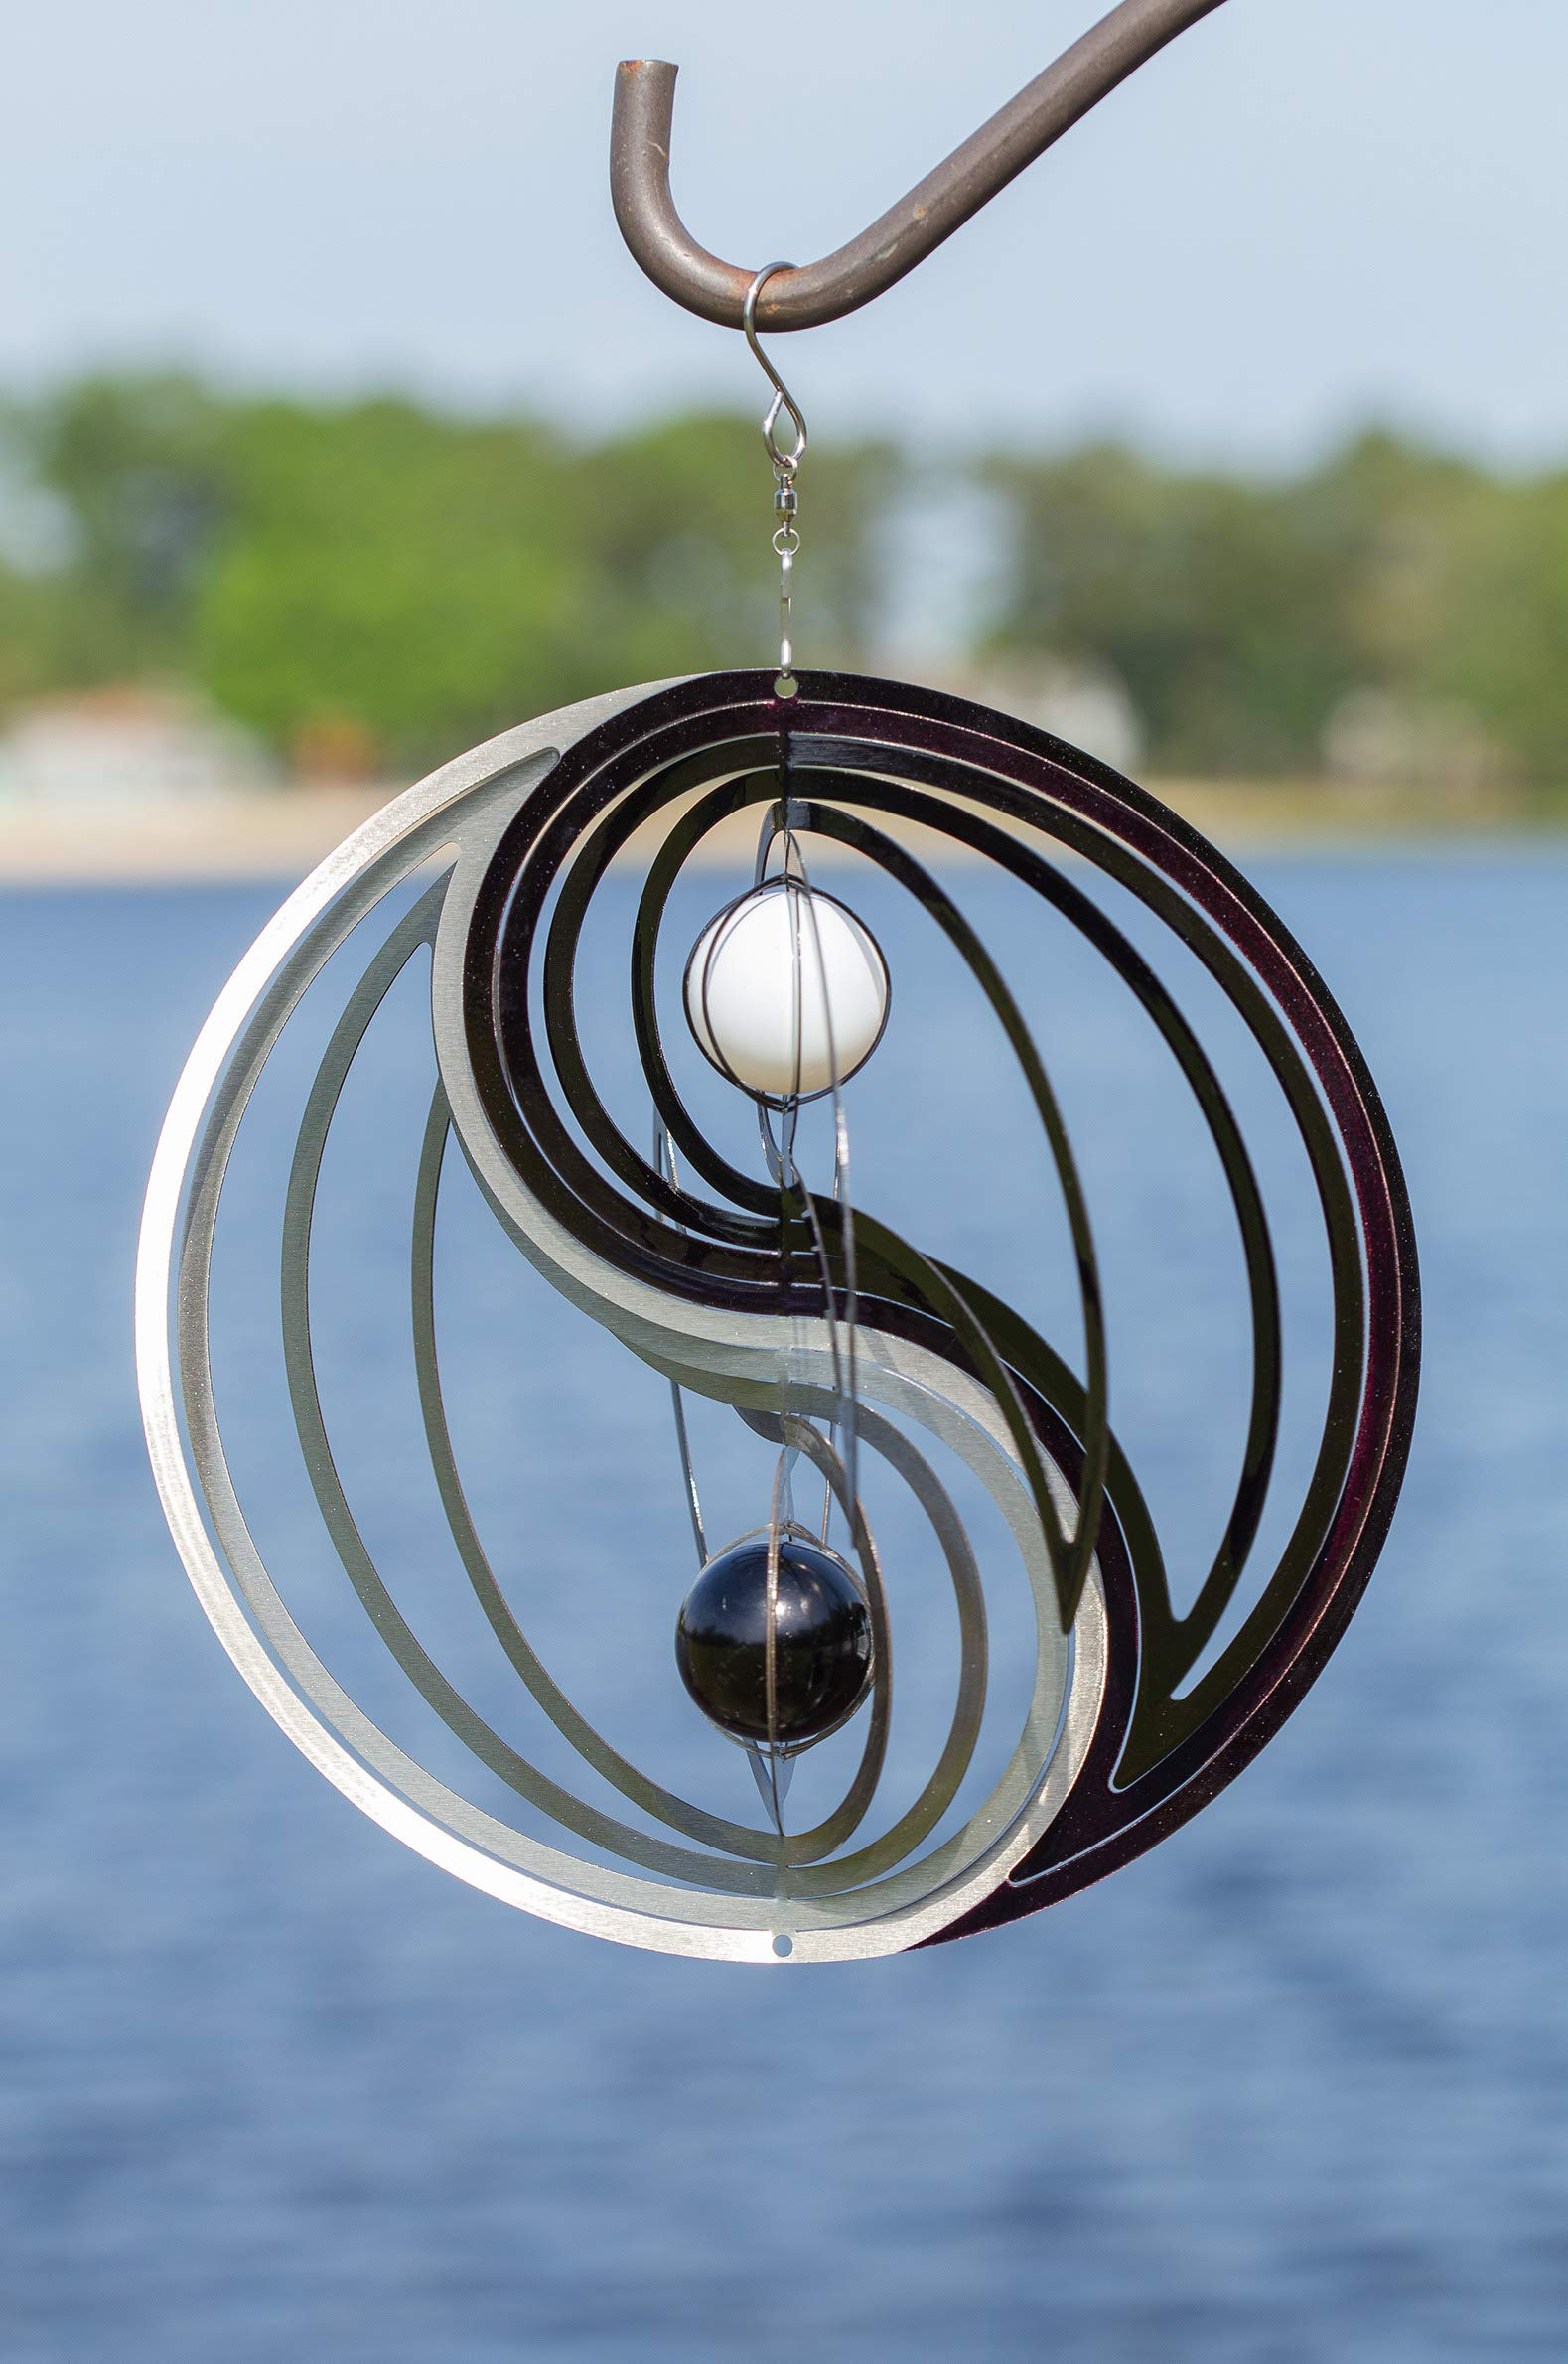 VP Home Kinetic 3D Metal Garden Wind Spinner (Yin Yang)